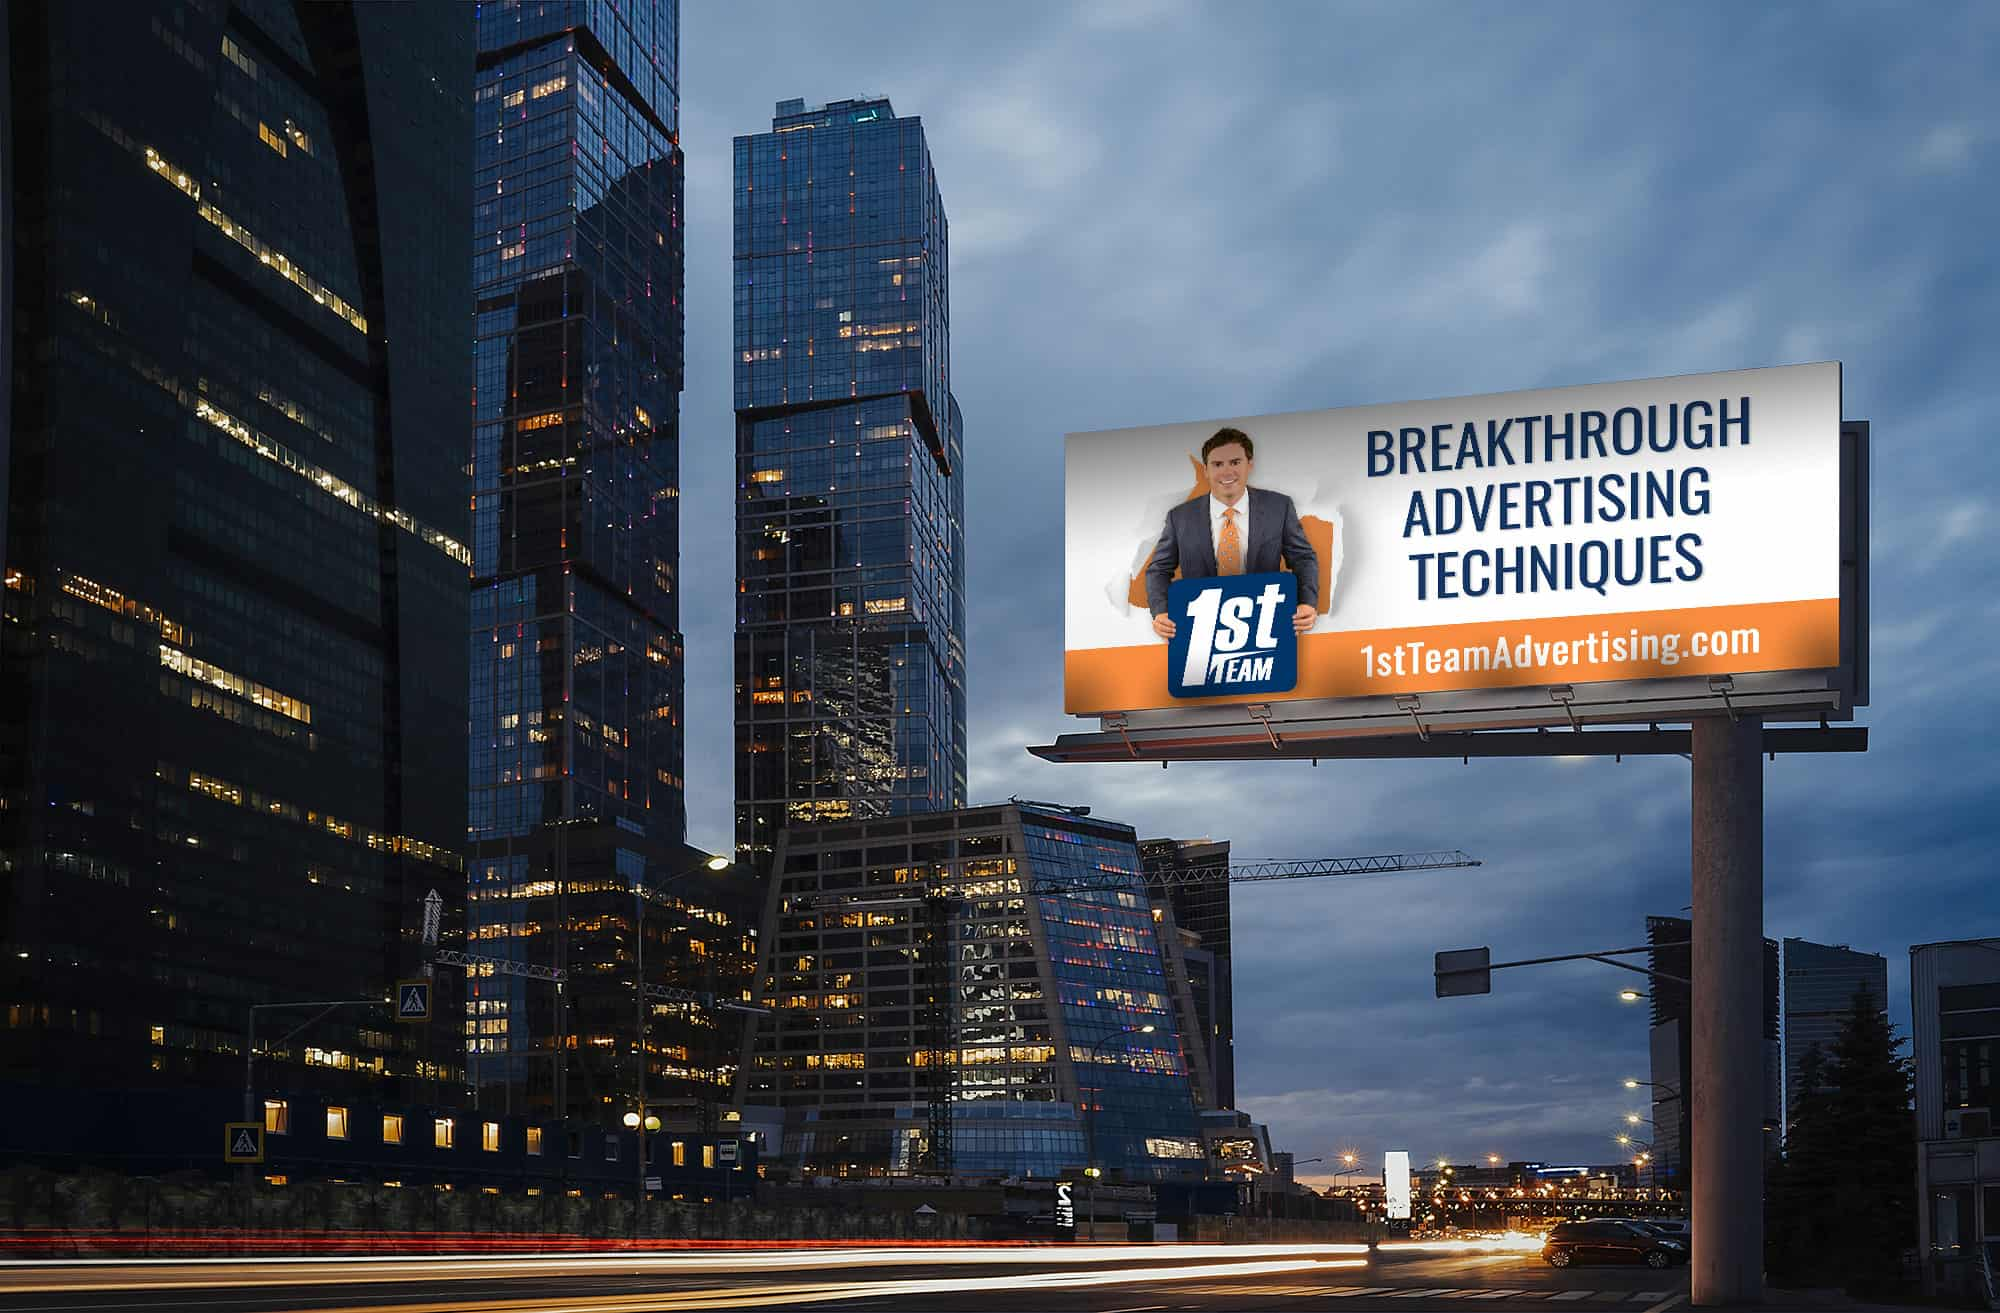 1st Team Advertising billboard in busy city at night